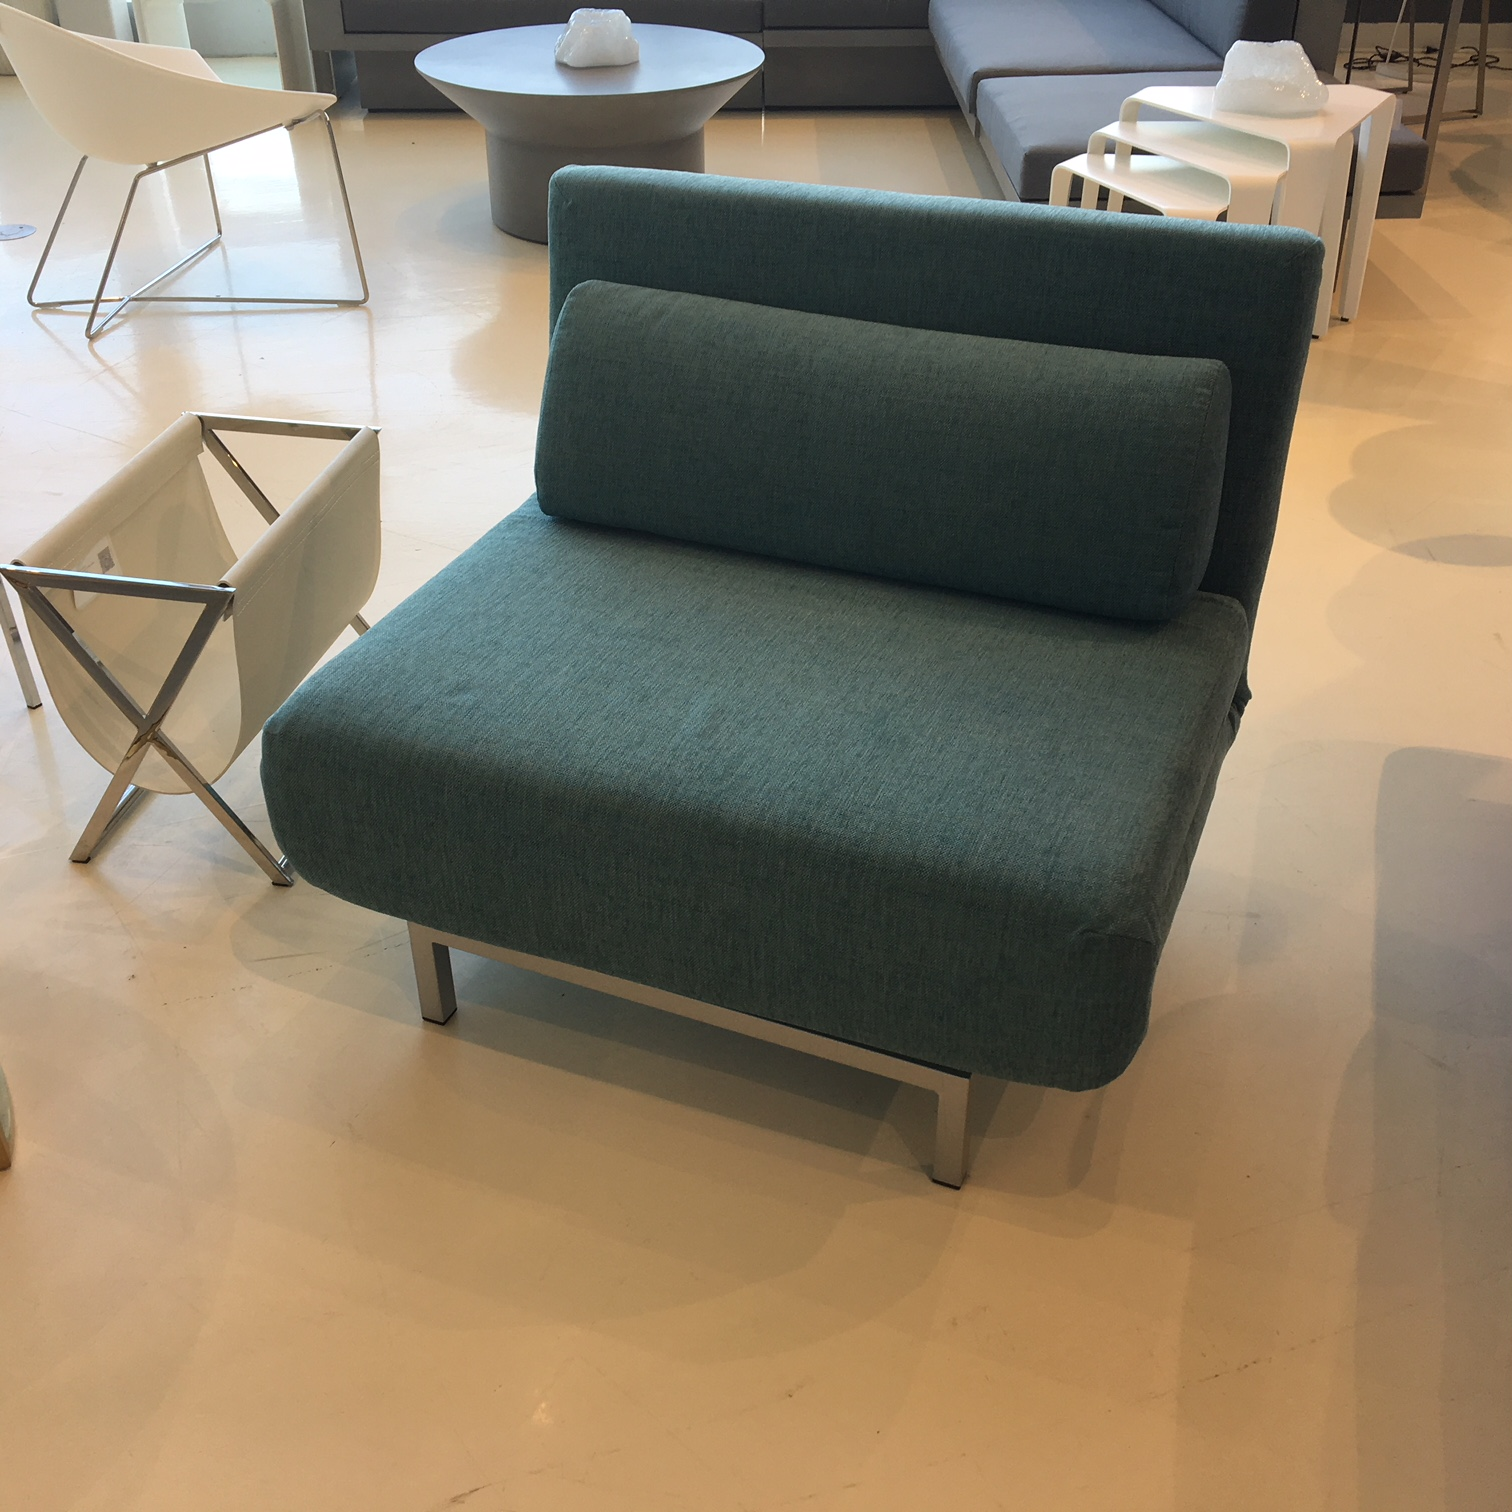 Magasin Ottawa Multi Fauteuil Lit Mikaza Meubles Modernes Montreal